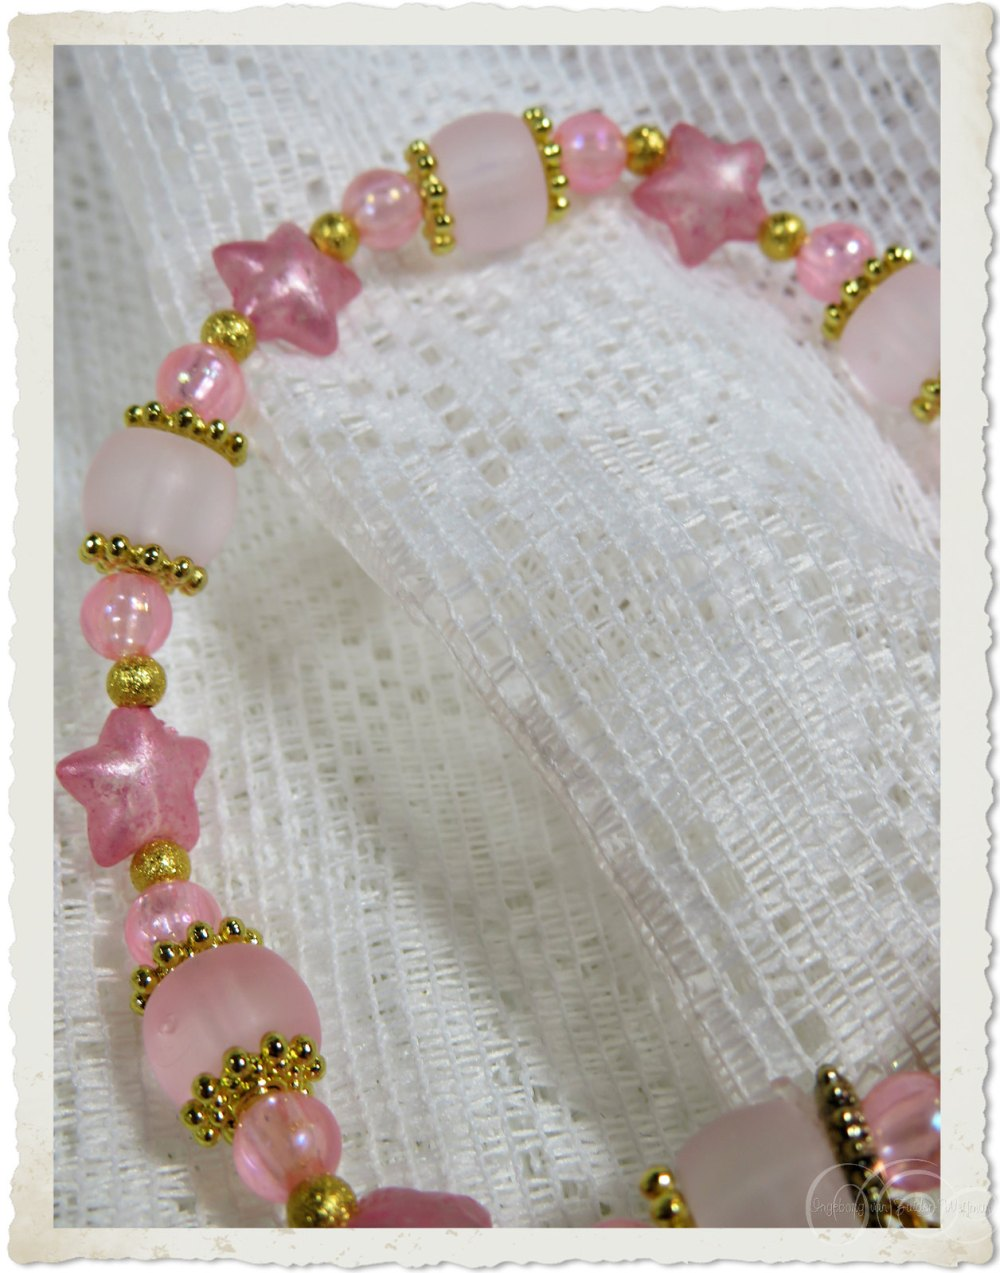 Details of pink star beads and golden spacers